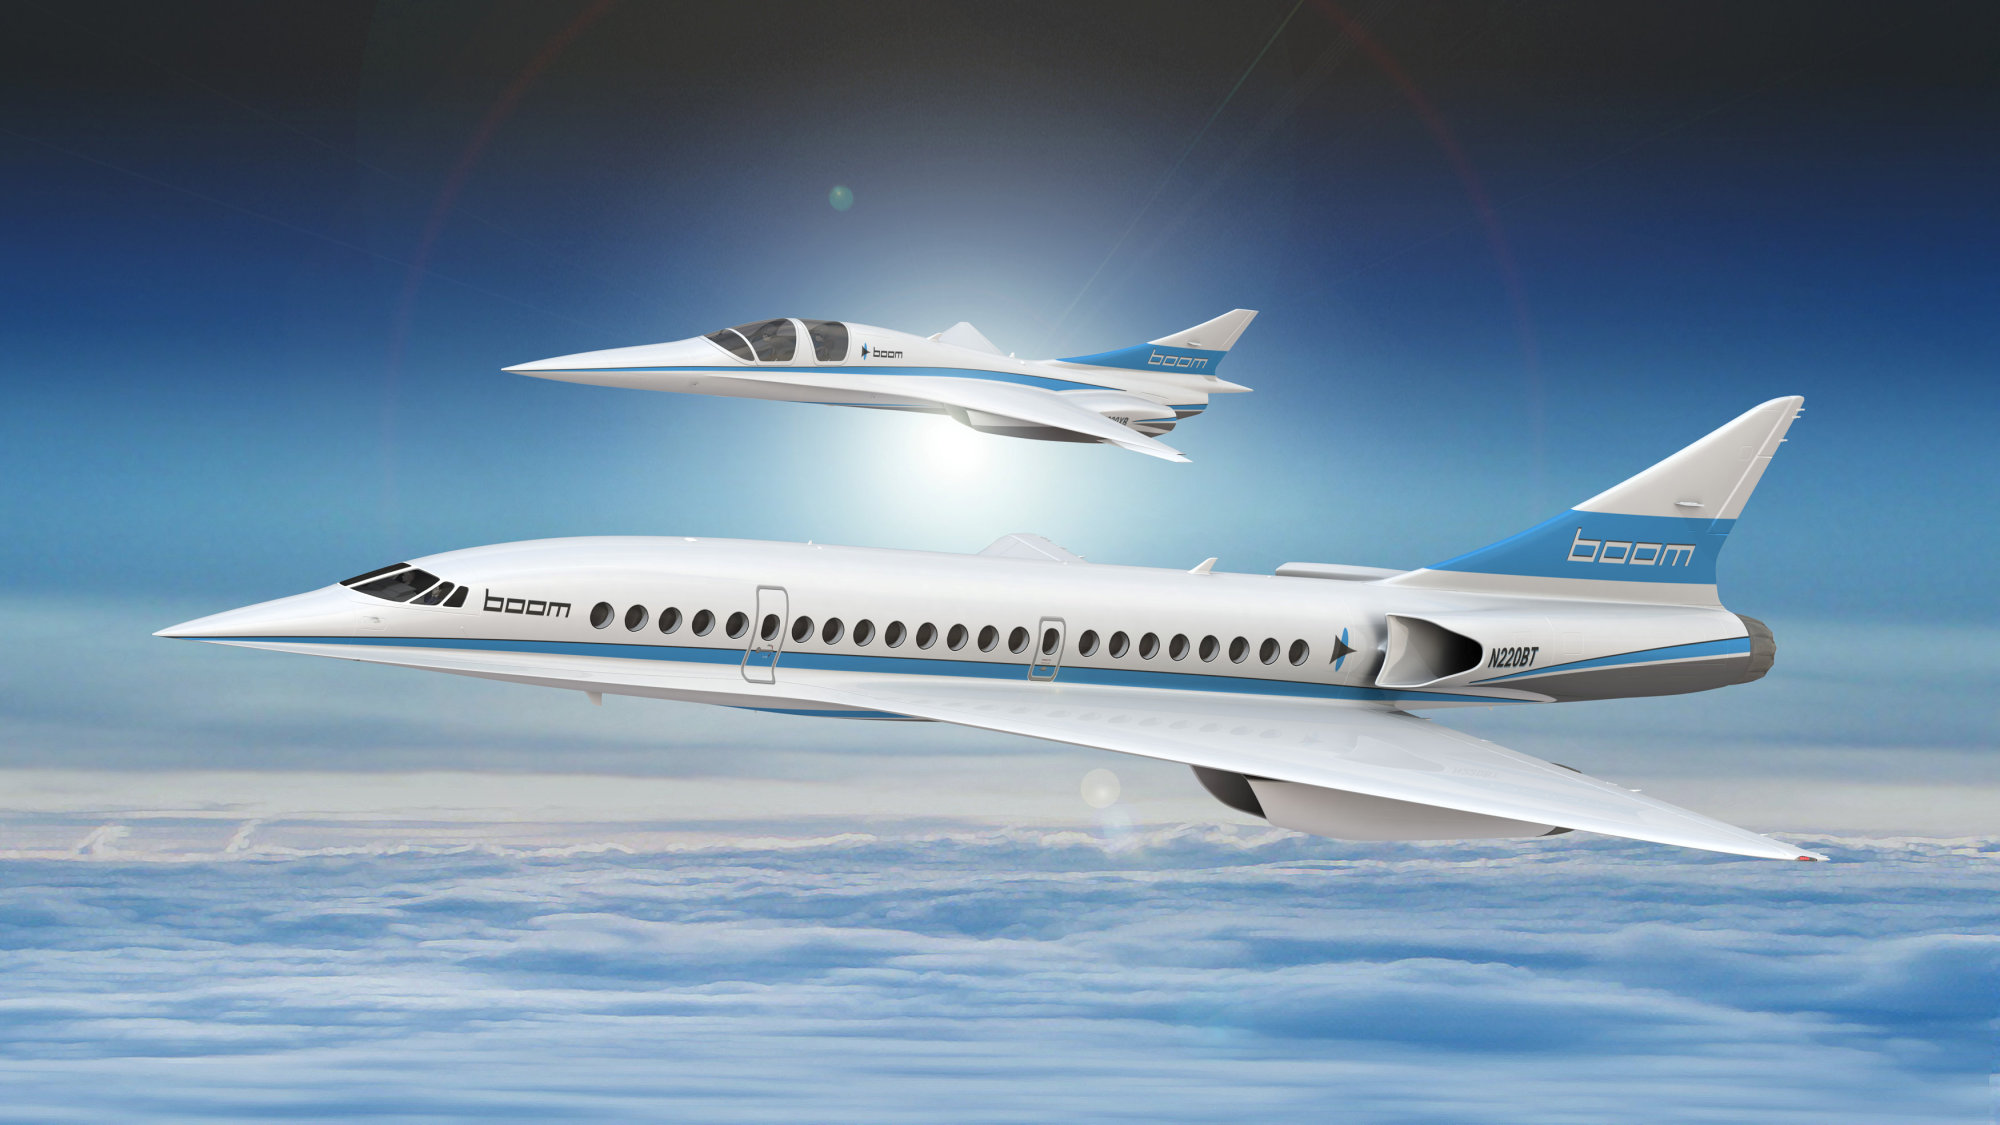 An artist's impression shows Boom's 55-seat supersonic aircraft (below) and Boom's XB-1 supersonic demonstrator in this undated handout obtained Monday. | REUTERS